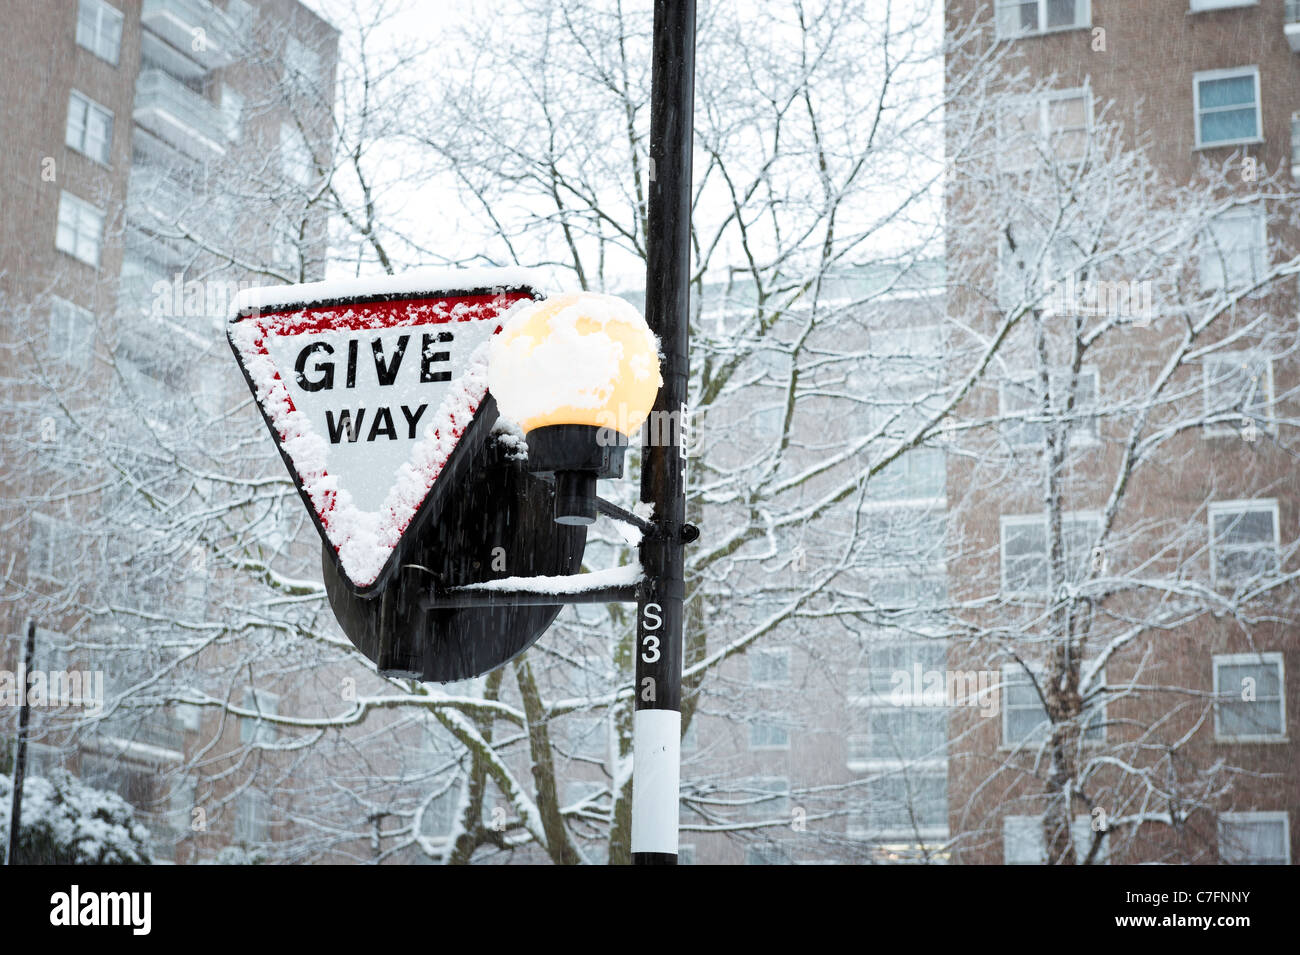 Give Way road sign covered in snow, London December 2011, England, UK Stock Photo